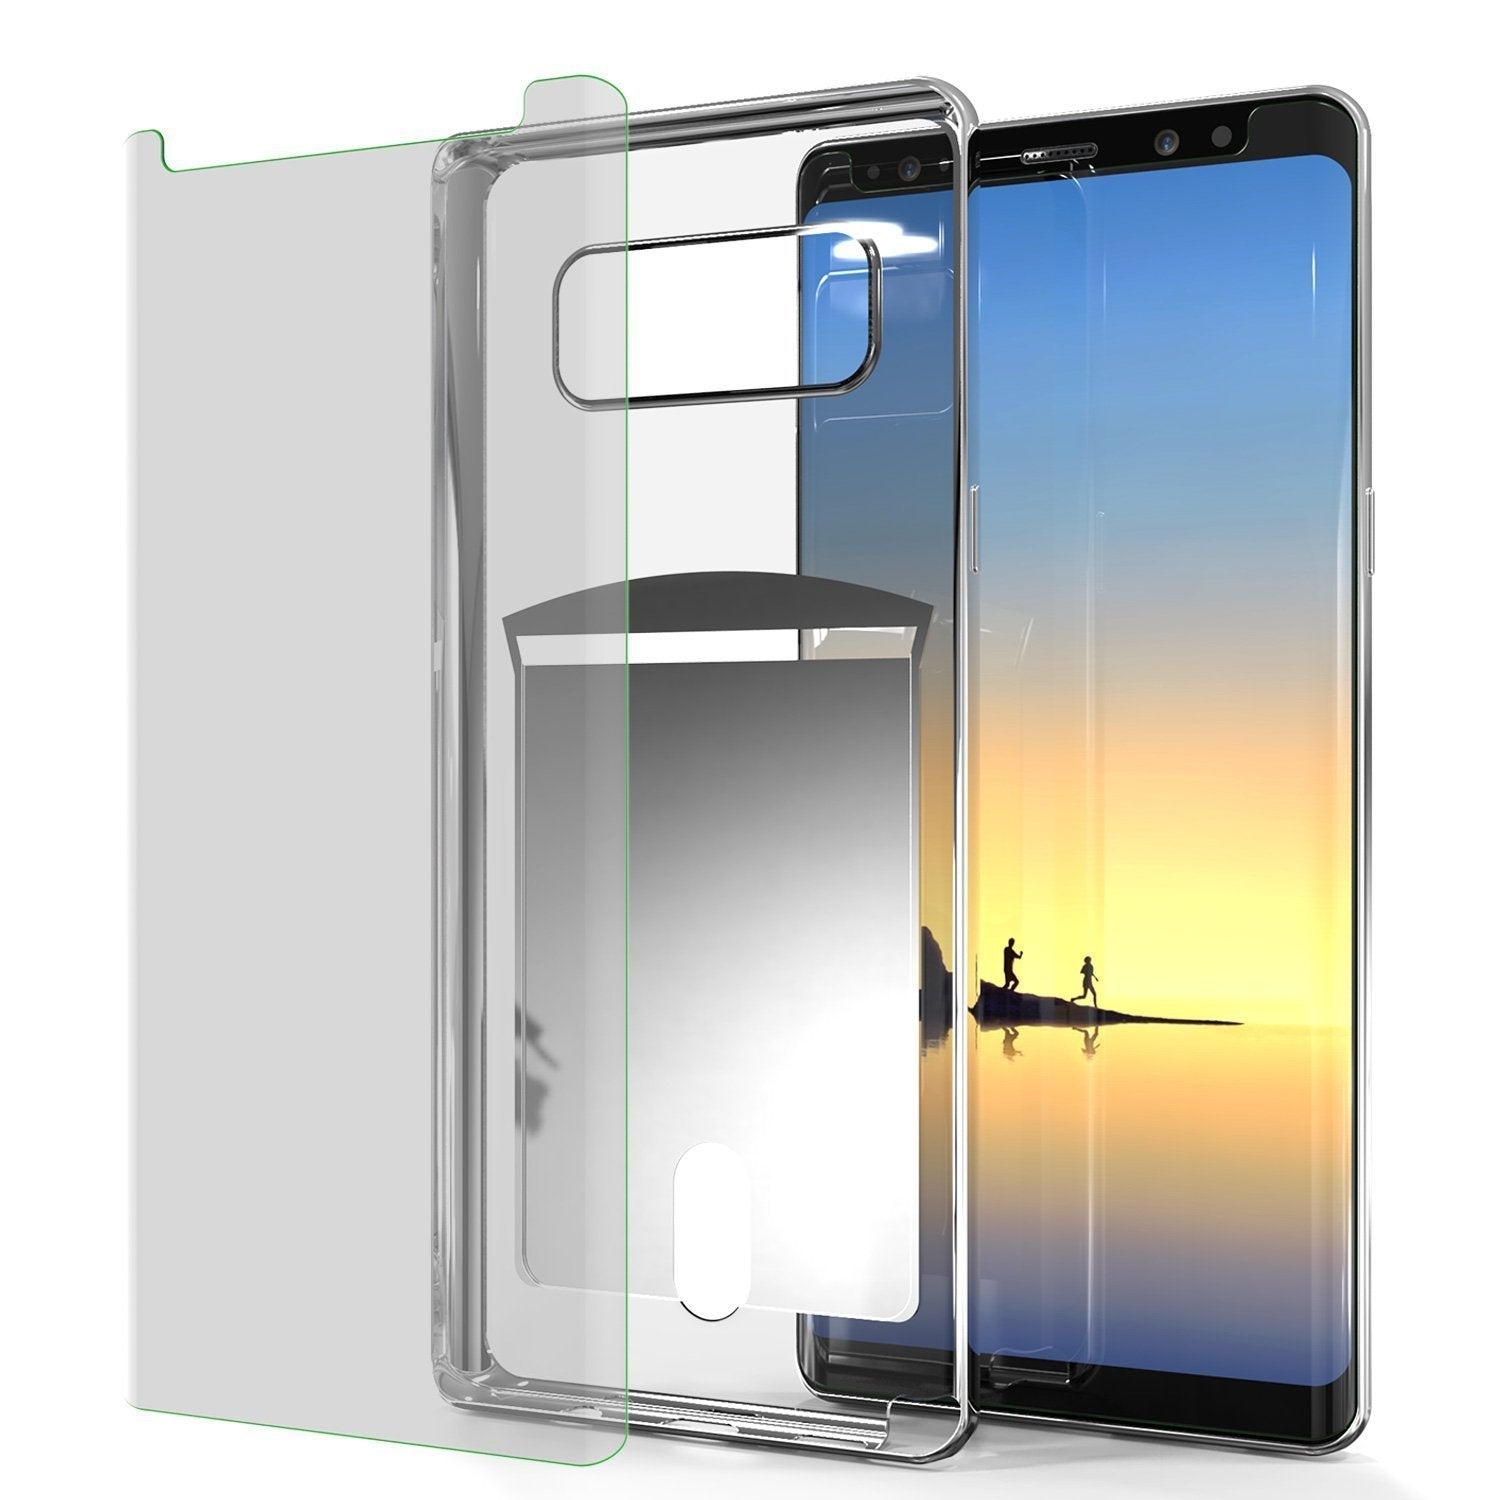 Galaxy Note 8 Case, PUNKCASE® LUCID Silver Series | Card Slot | SHIELD Screen Protector | Ultra fit - PunkCase NZ